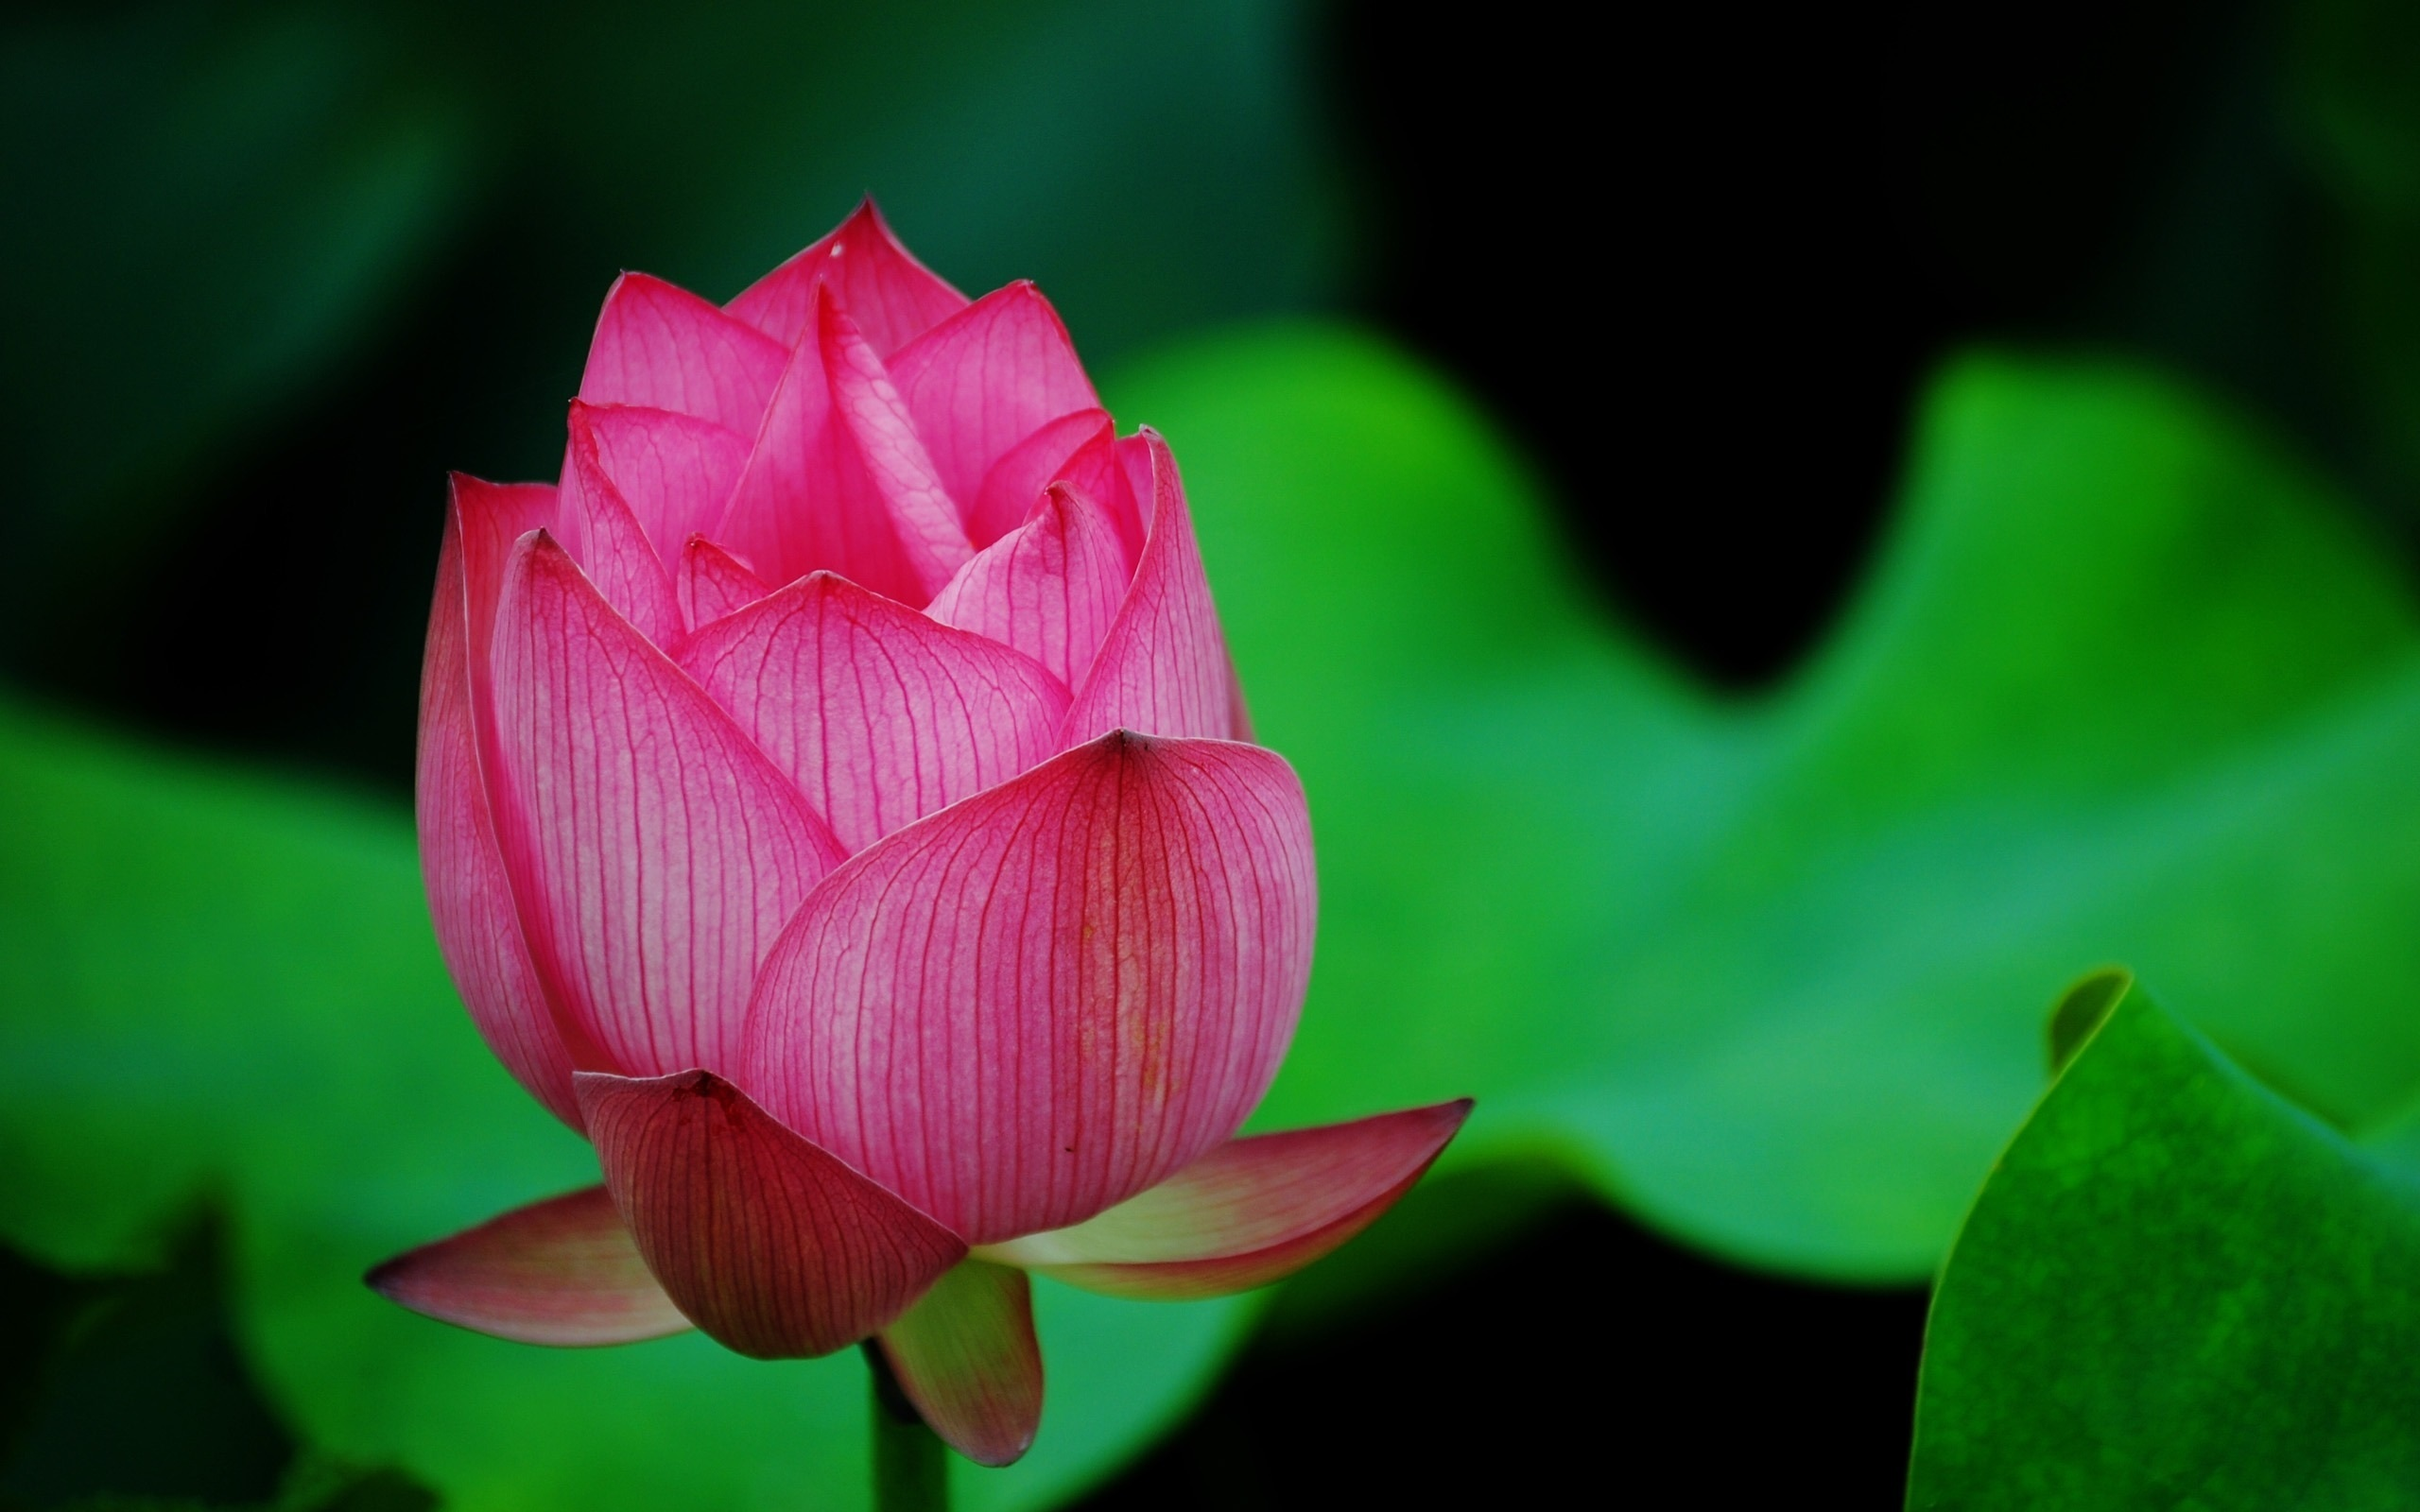 Blooming Lotus Flower Wallpapers 2560x1600 510876